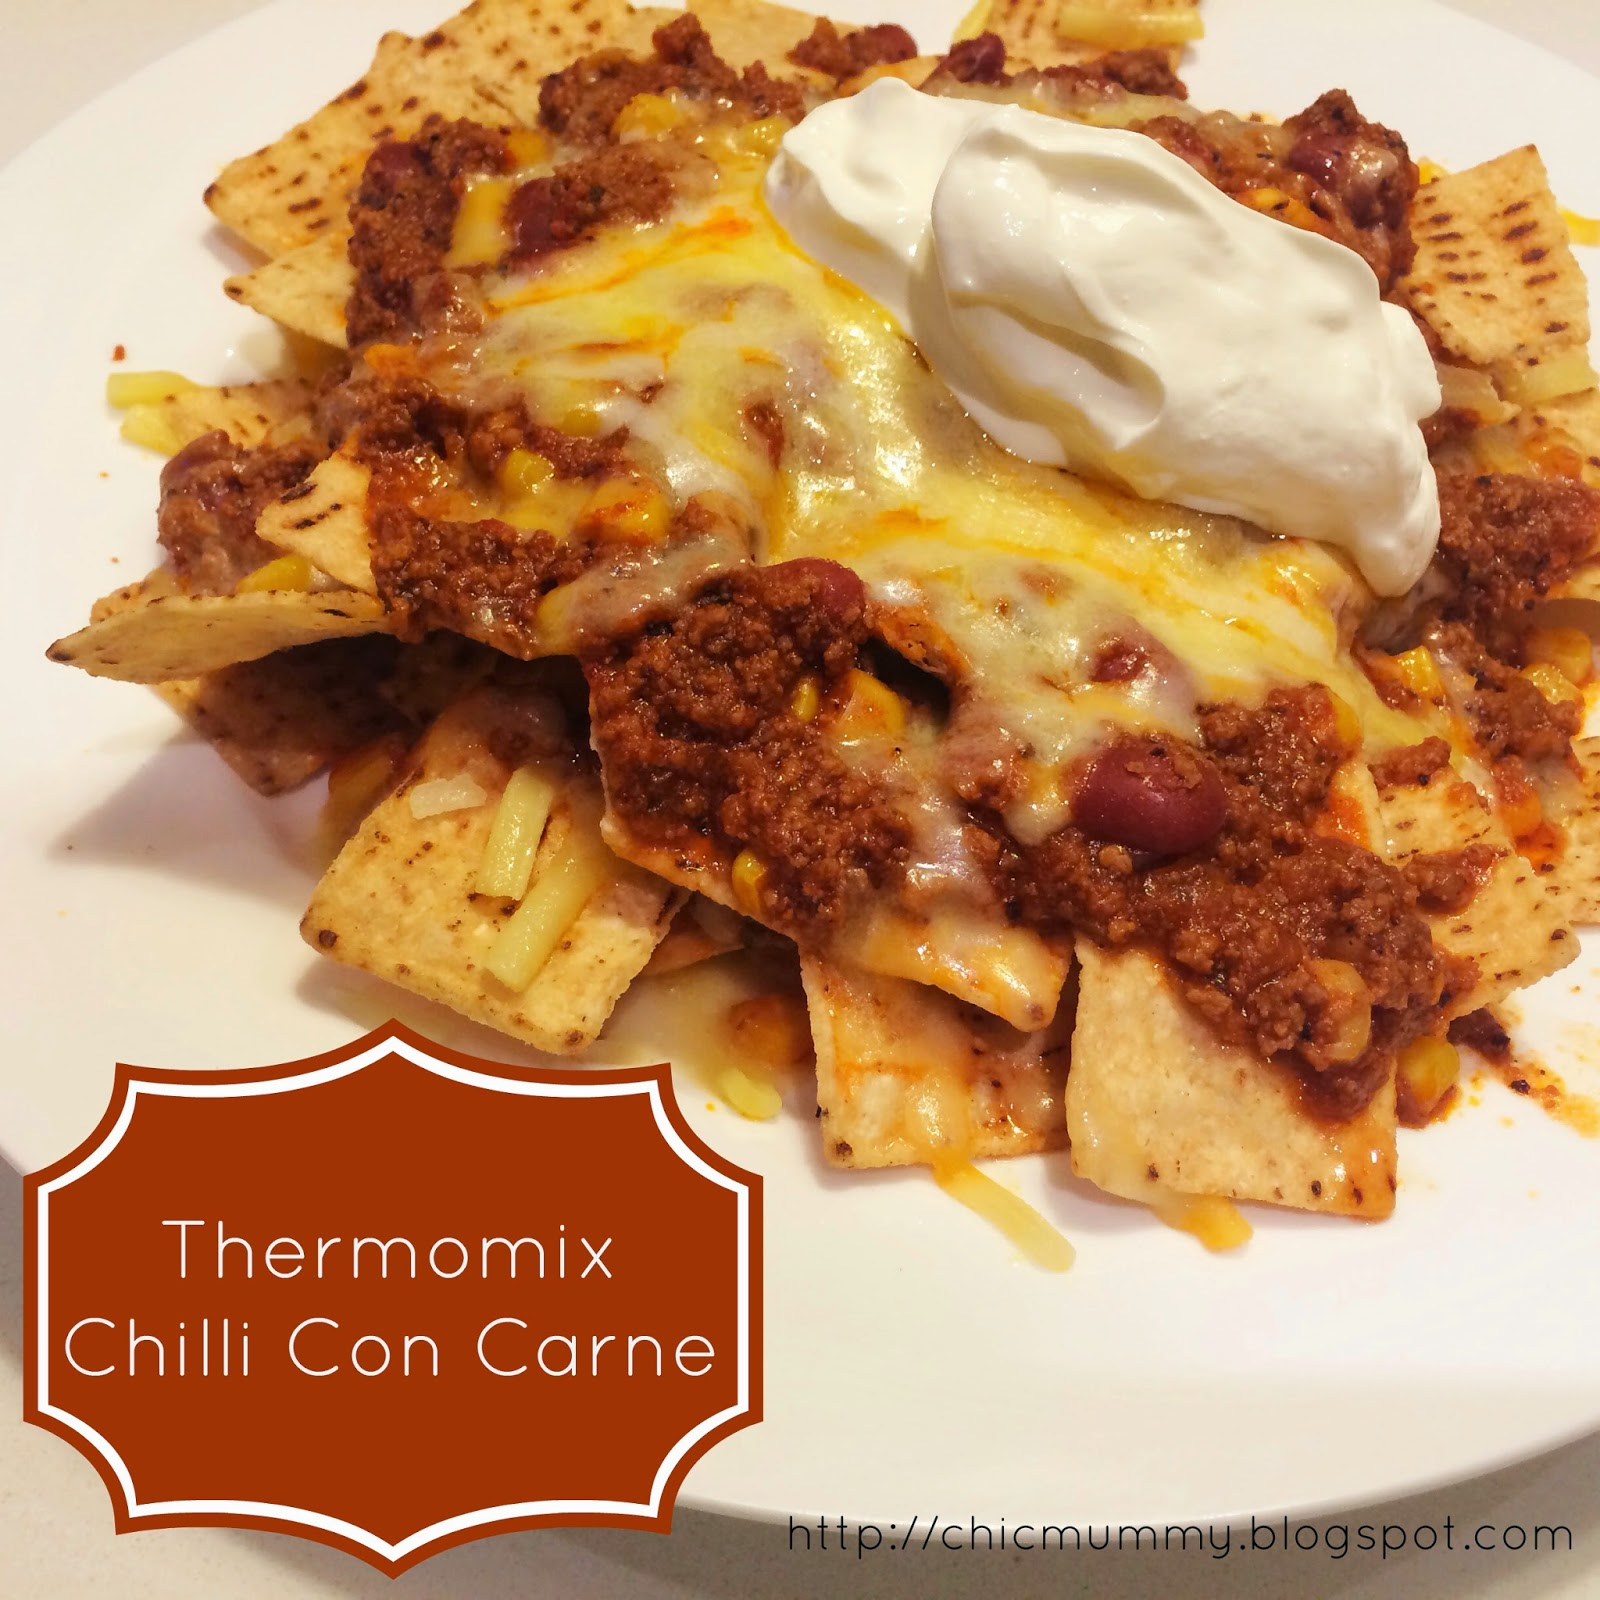 Chic Mummy: Thermomix Chilli Con Carne